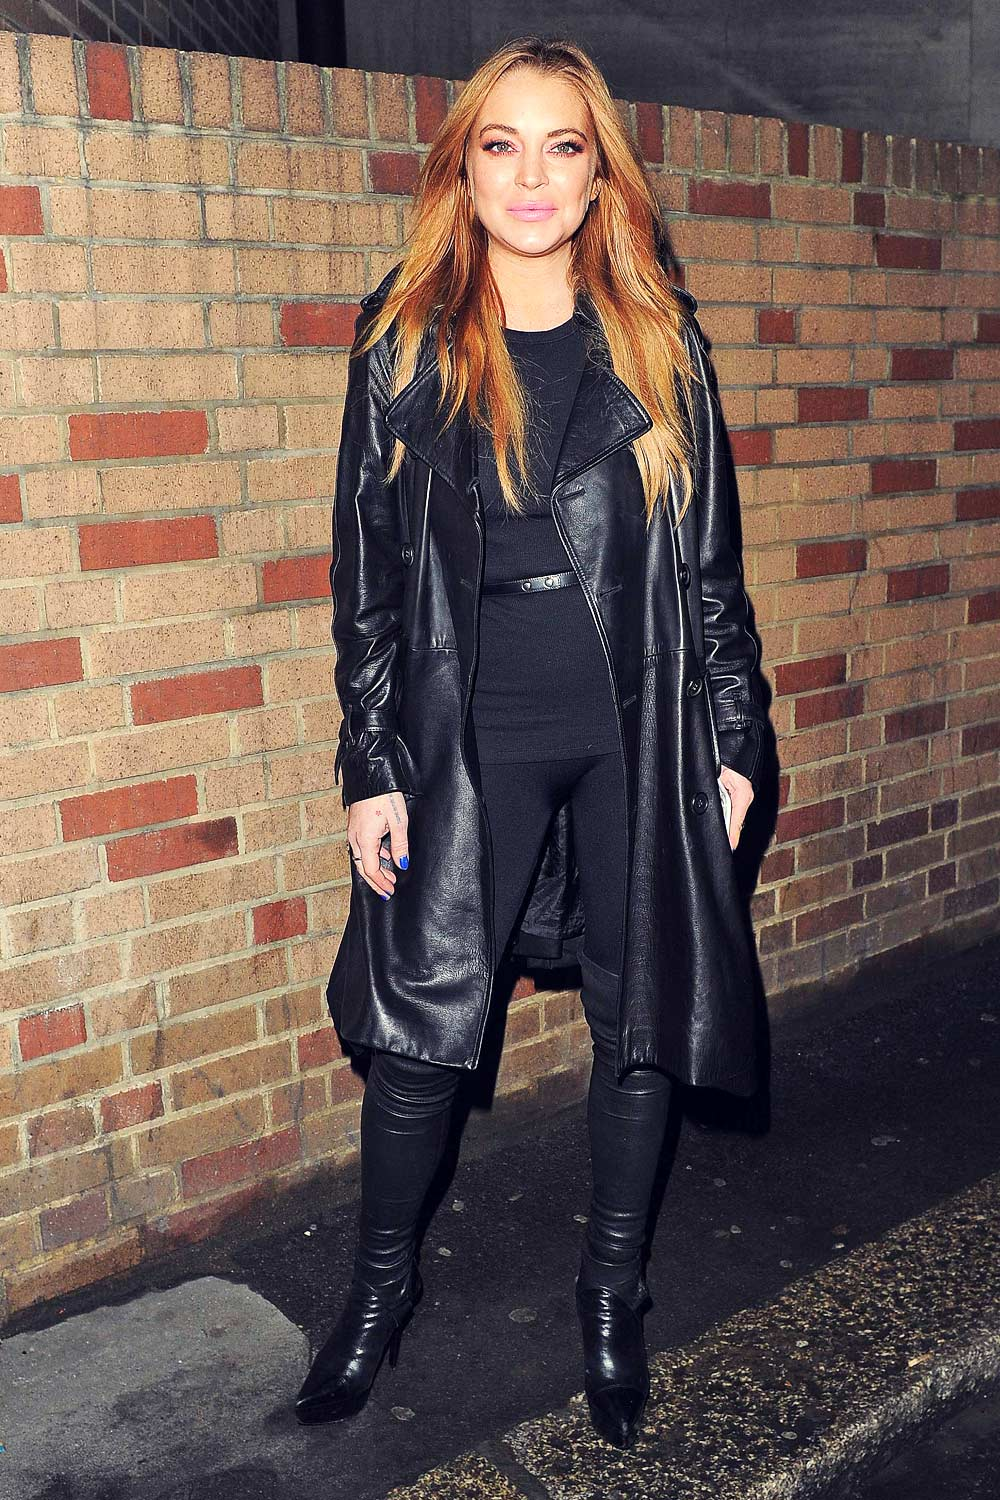 Lindsay Lohan Out In London Leather Celebrities